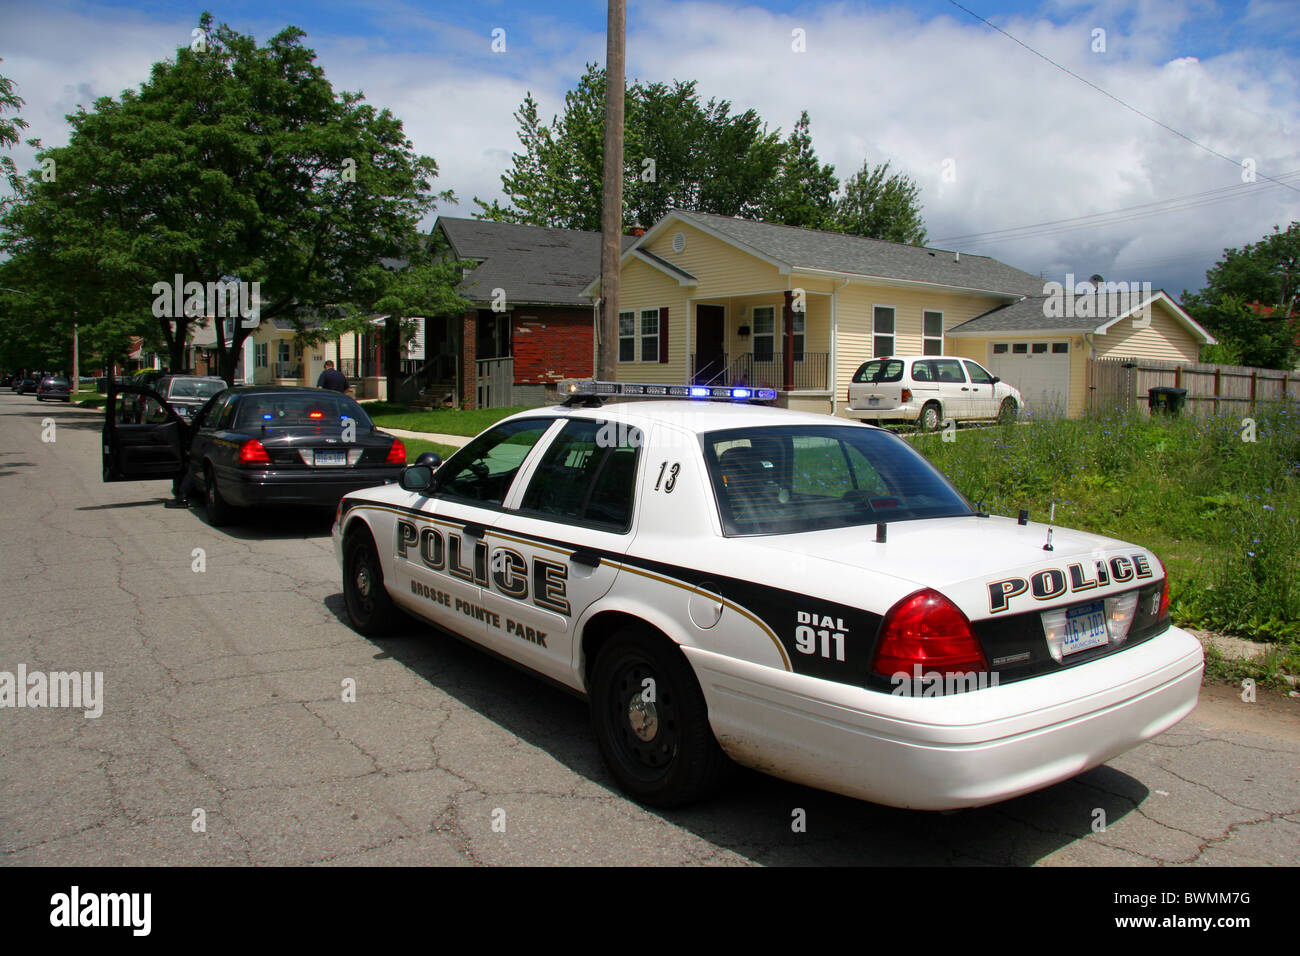 Grosse Pointe Park police squad car in a Detroit neighbourhood. - Stock Image